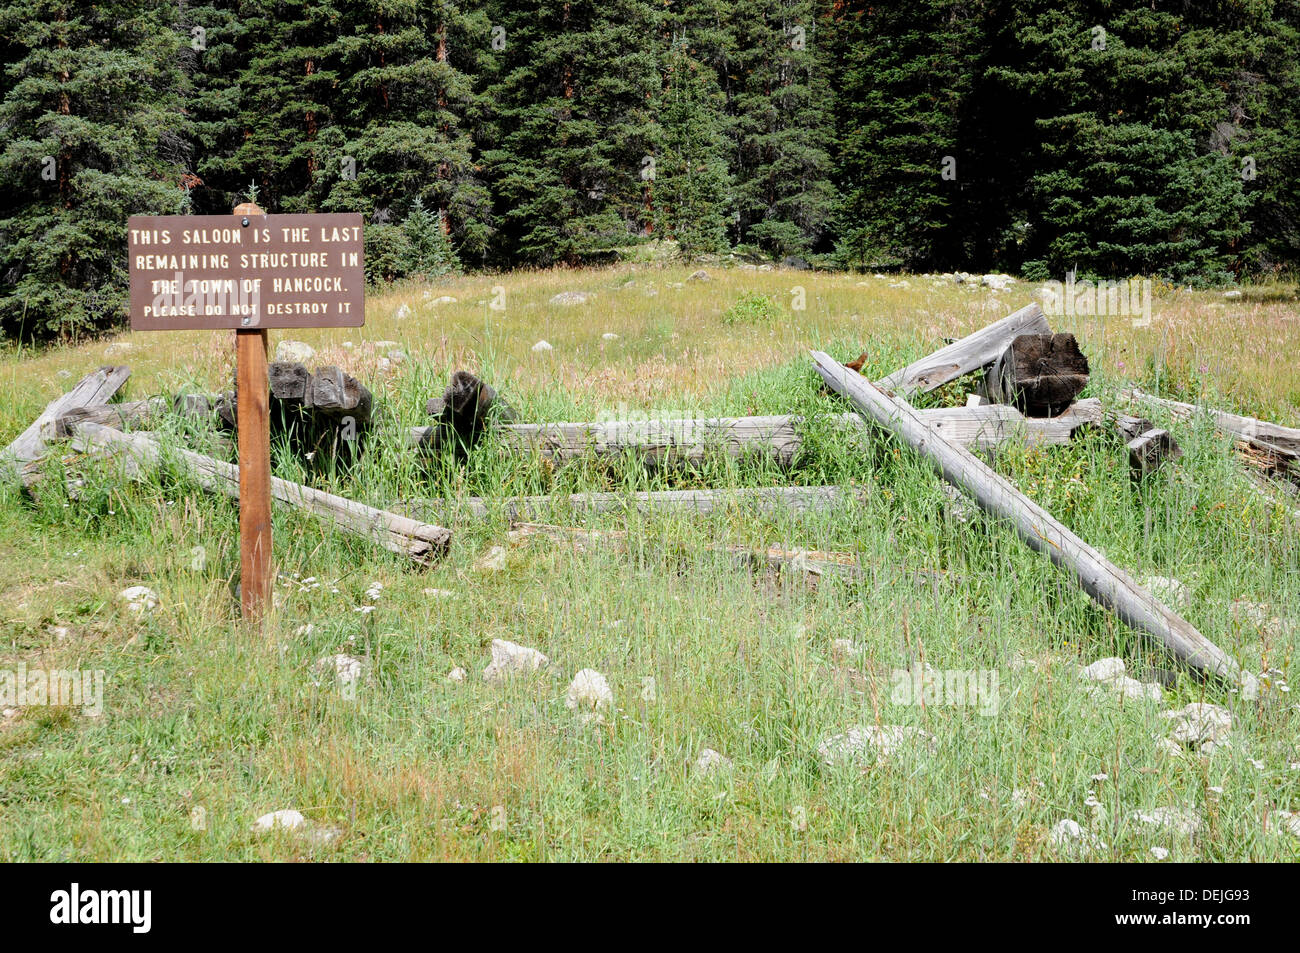 All that remains of Hancock, a mining and railroad town that flourished briefly between 1880 and 1910. - Stock Image